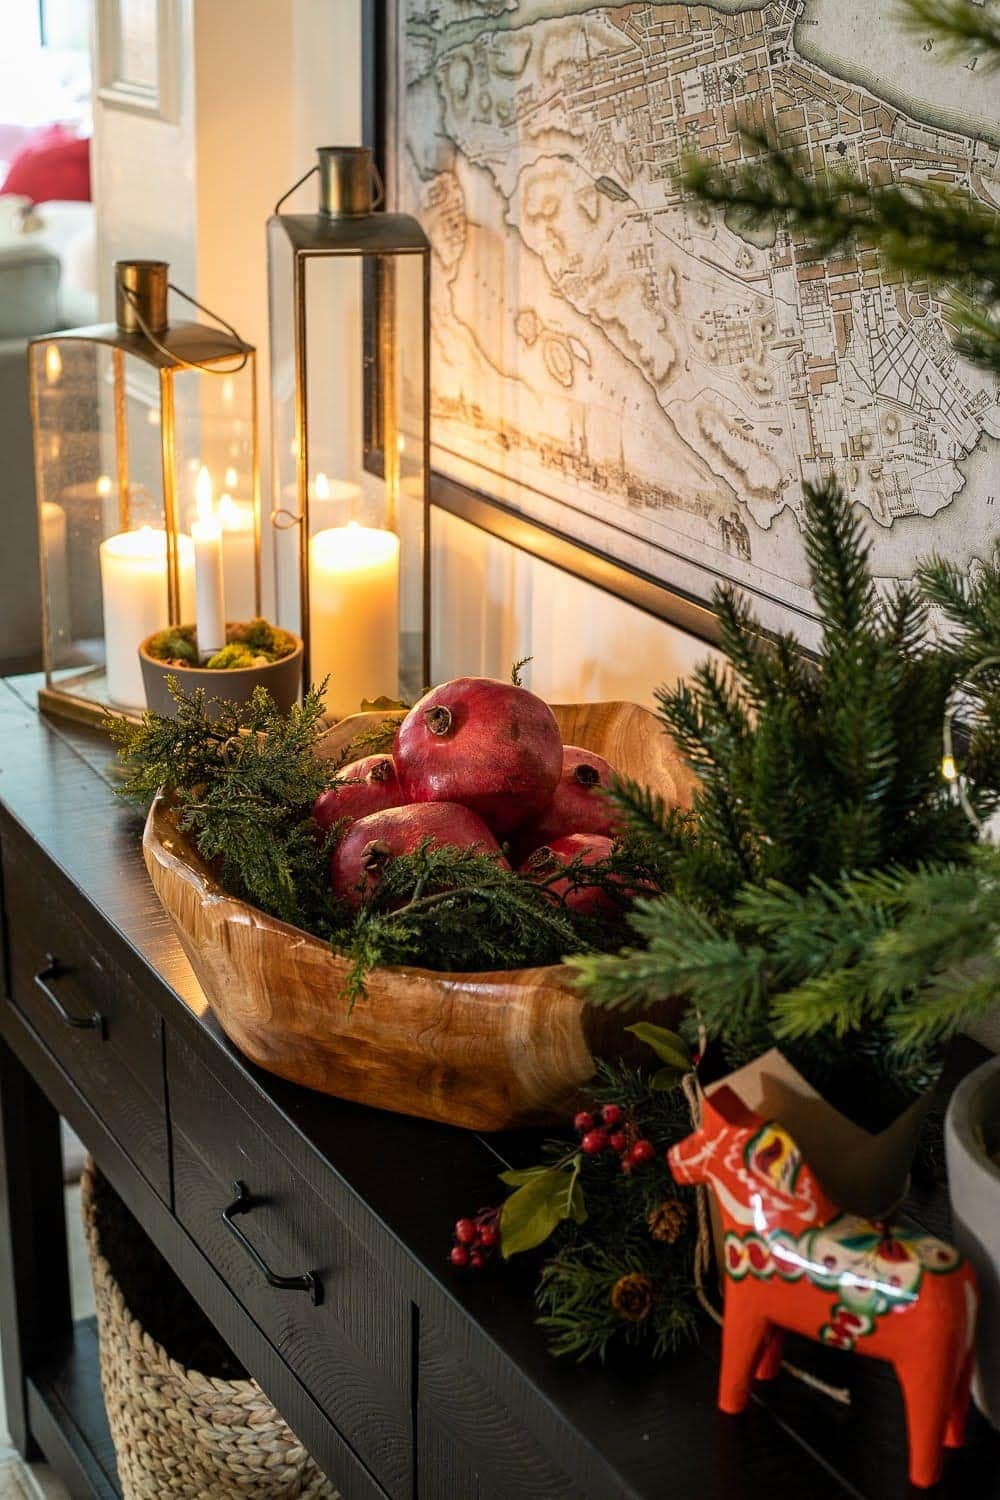 Swedish Christmas with Dala horse, candlelight, and pomegranates in a bowl.